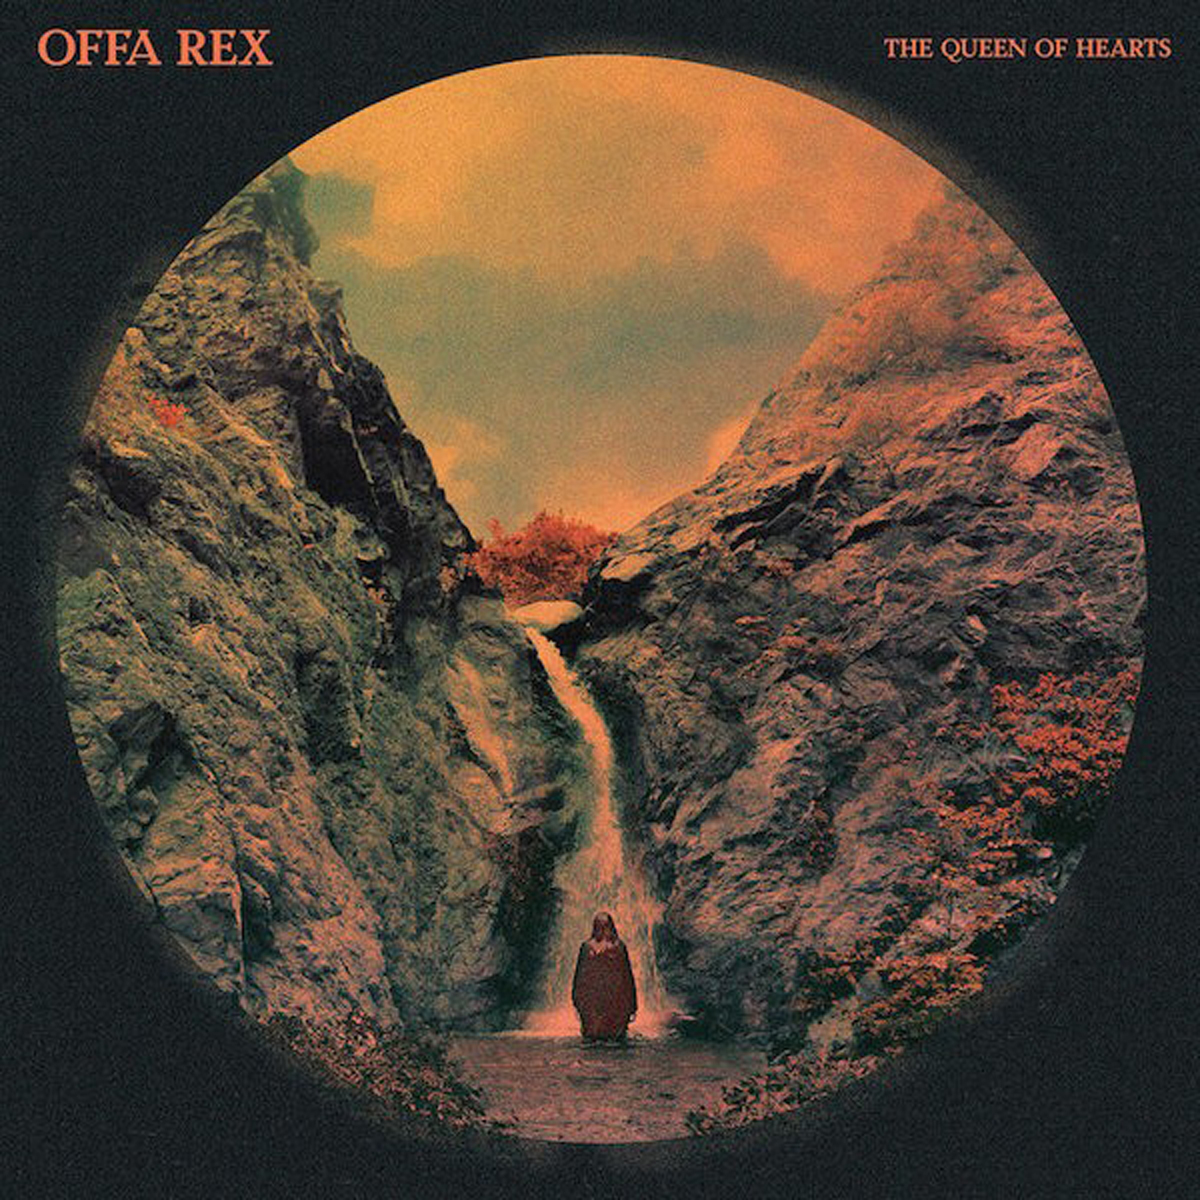 The Decemberists And Olivia Chaney Team Up For Side-Project Offa Rex, Perform First Single